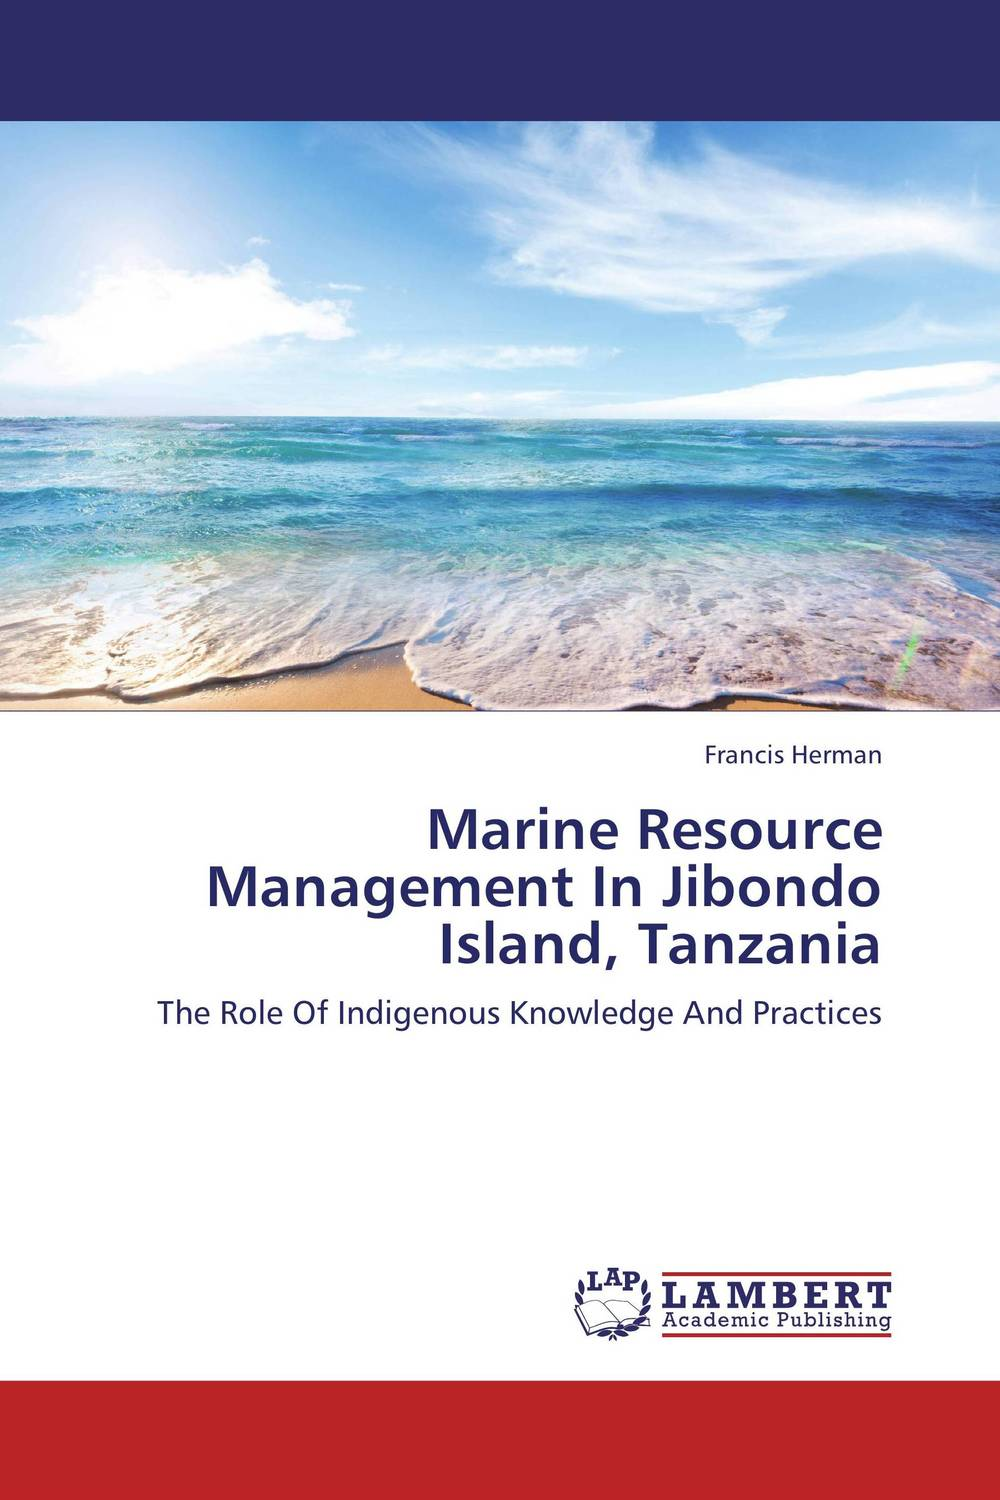 Marine Resource Management In Jibondo Island, Tanzania conflicts in forest resources usage and management